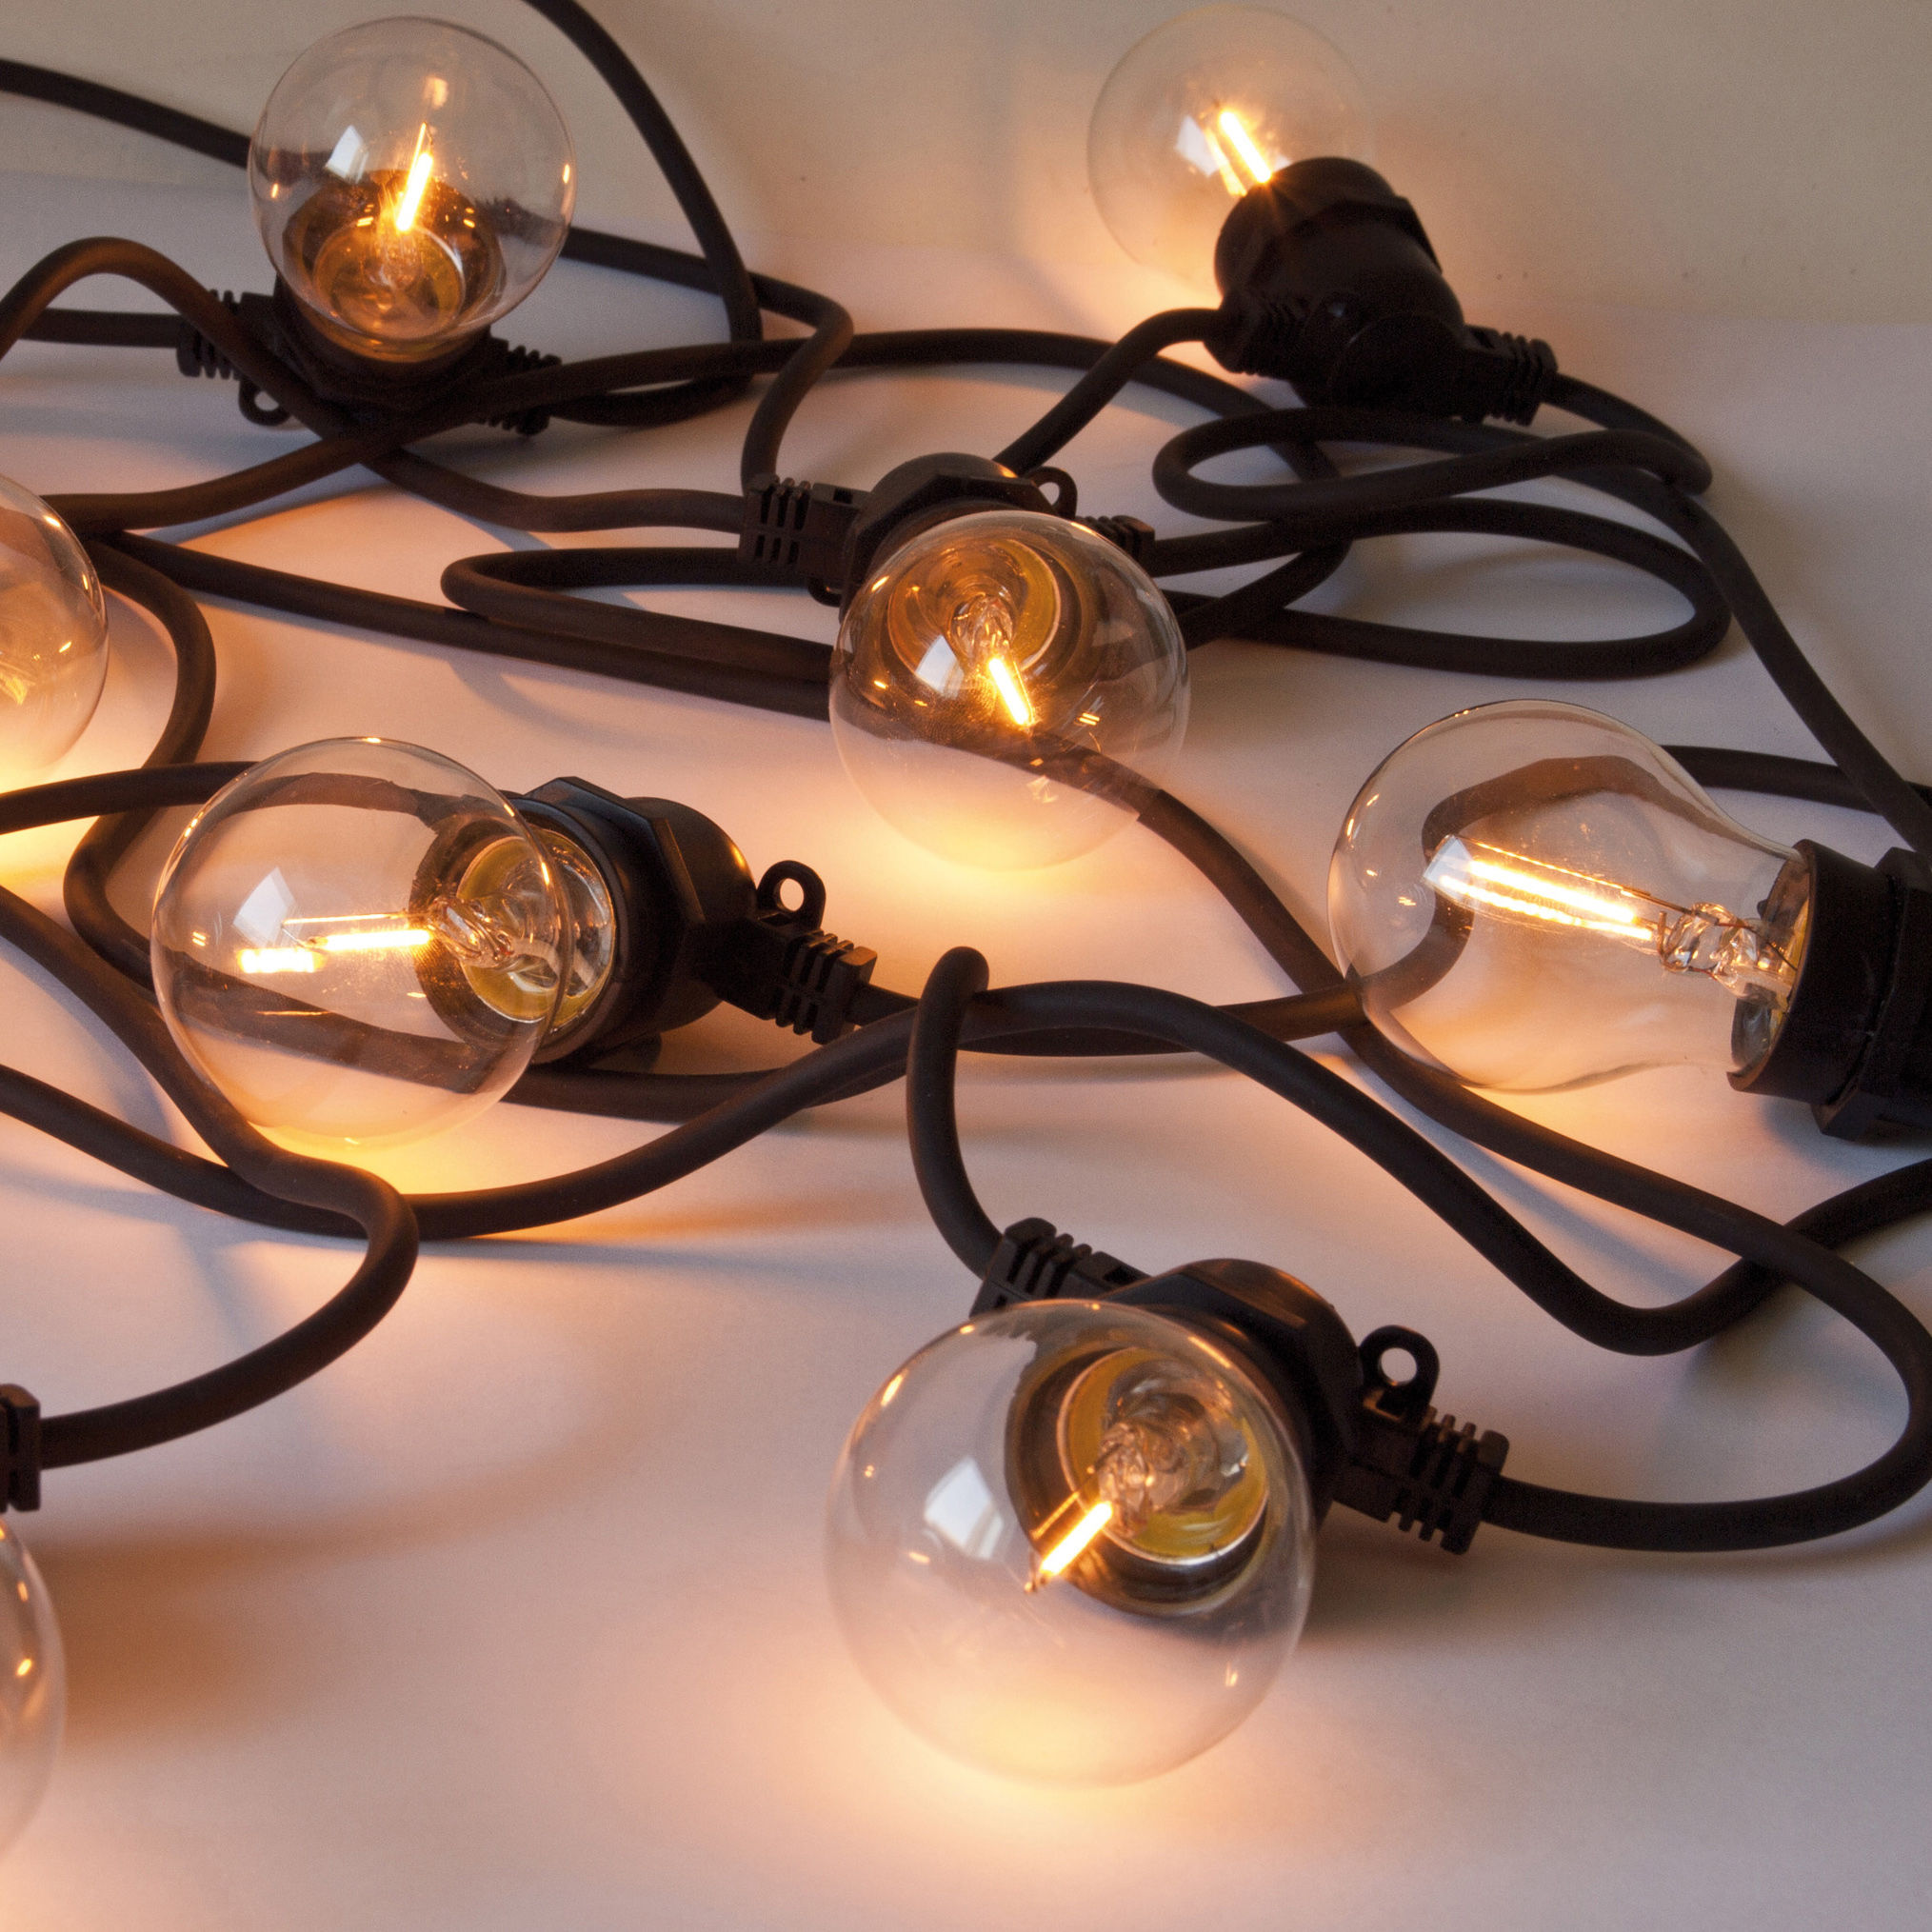 Lighting - Outdoor Lighting - Bella Vista Luminous garland CLEAR LED / Outdoor use - Seletti - Black wire / Transparent bulbs - Glass, Silicone